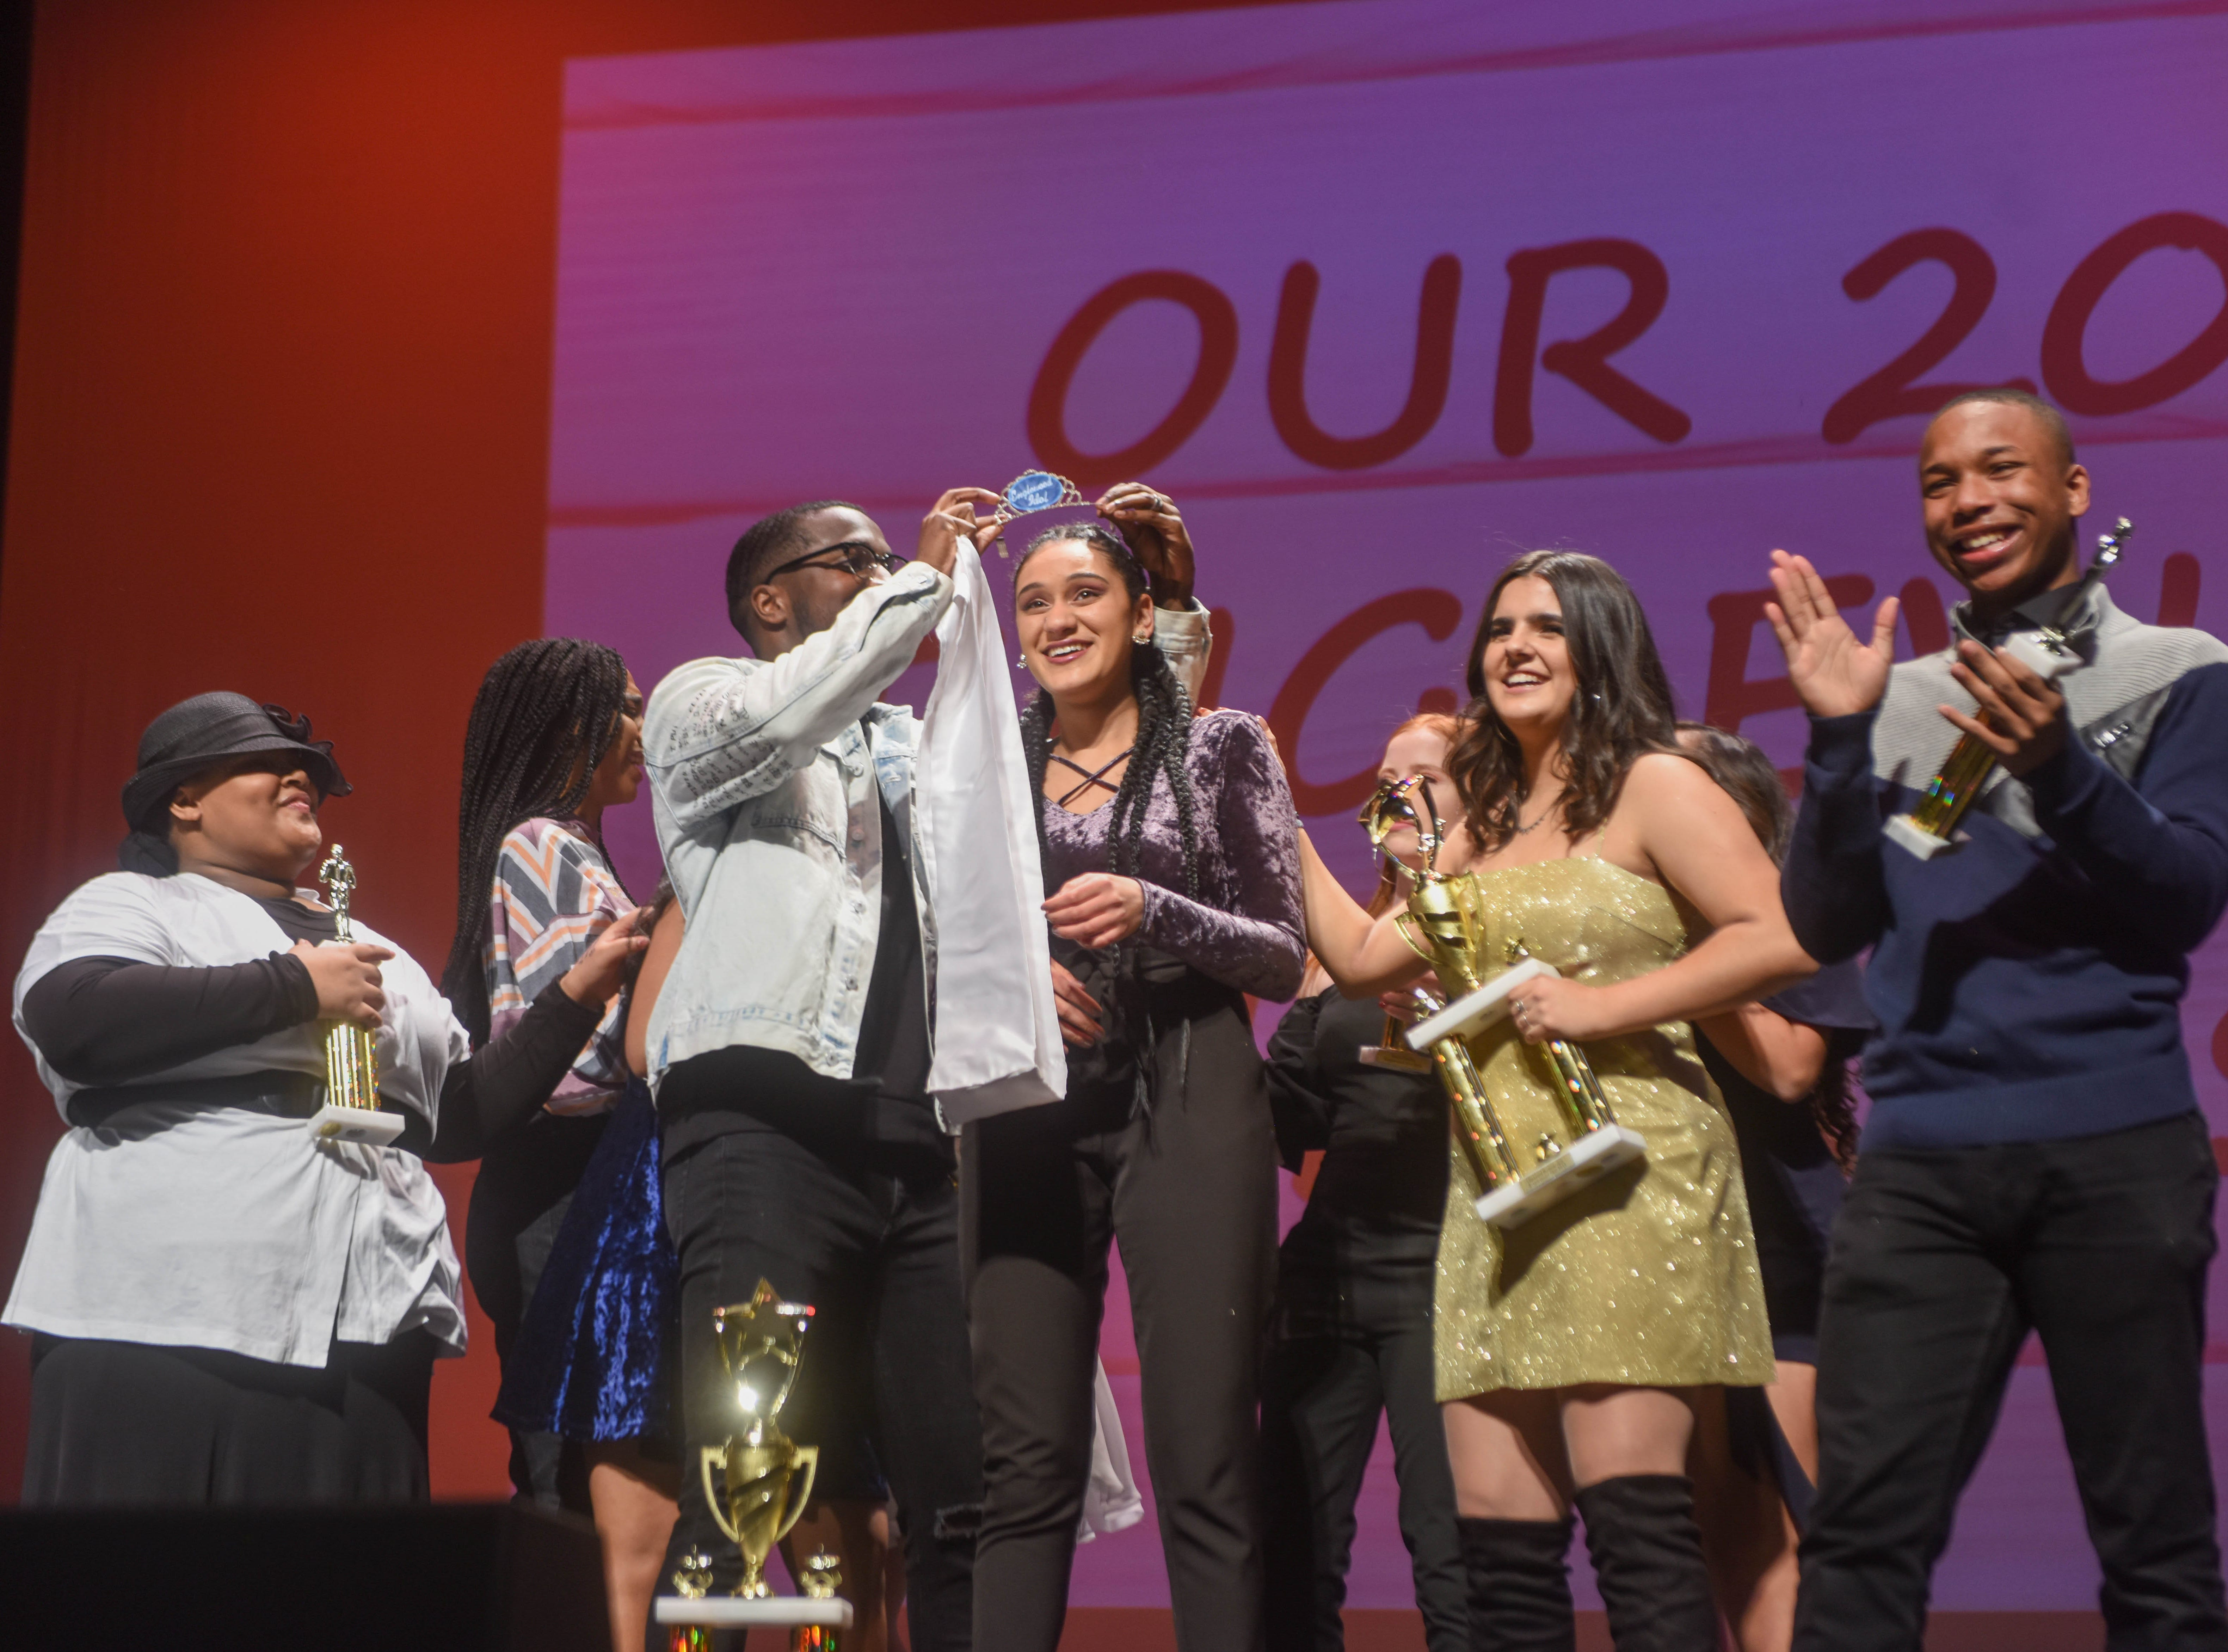 Genesis Capellan (2019 Englewood Idol Winner) is crowned. The 2019 Englewood Idol was held at bergenPAC theater. The singing competition is open to any high school student who currently lives or goes to school in Englewood, NJ. This years winner was Genesis Capellan. 01/11/2019